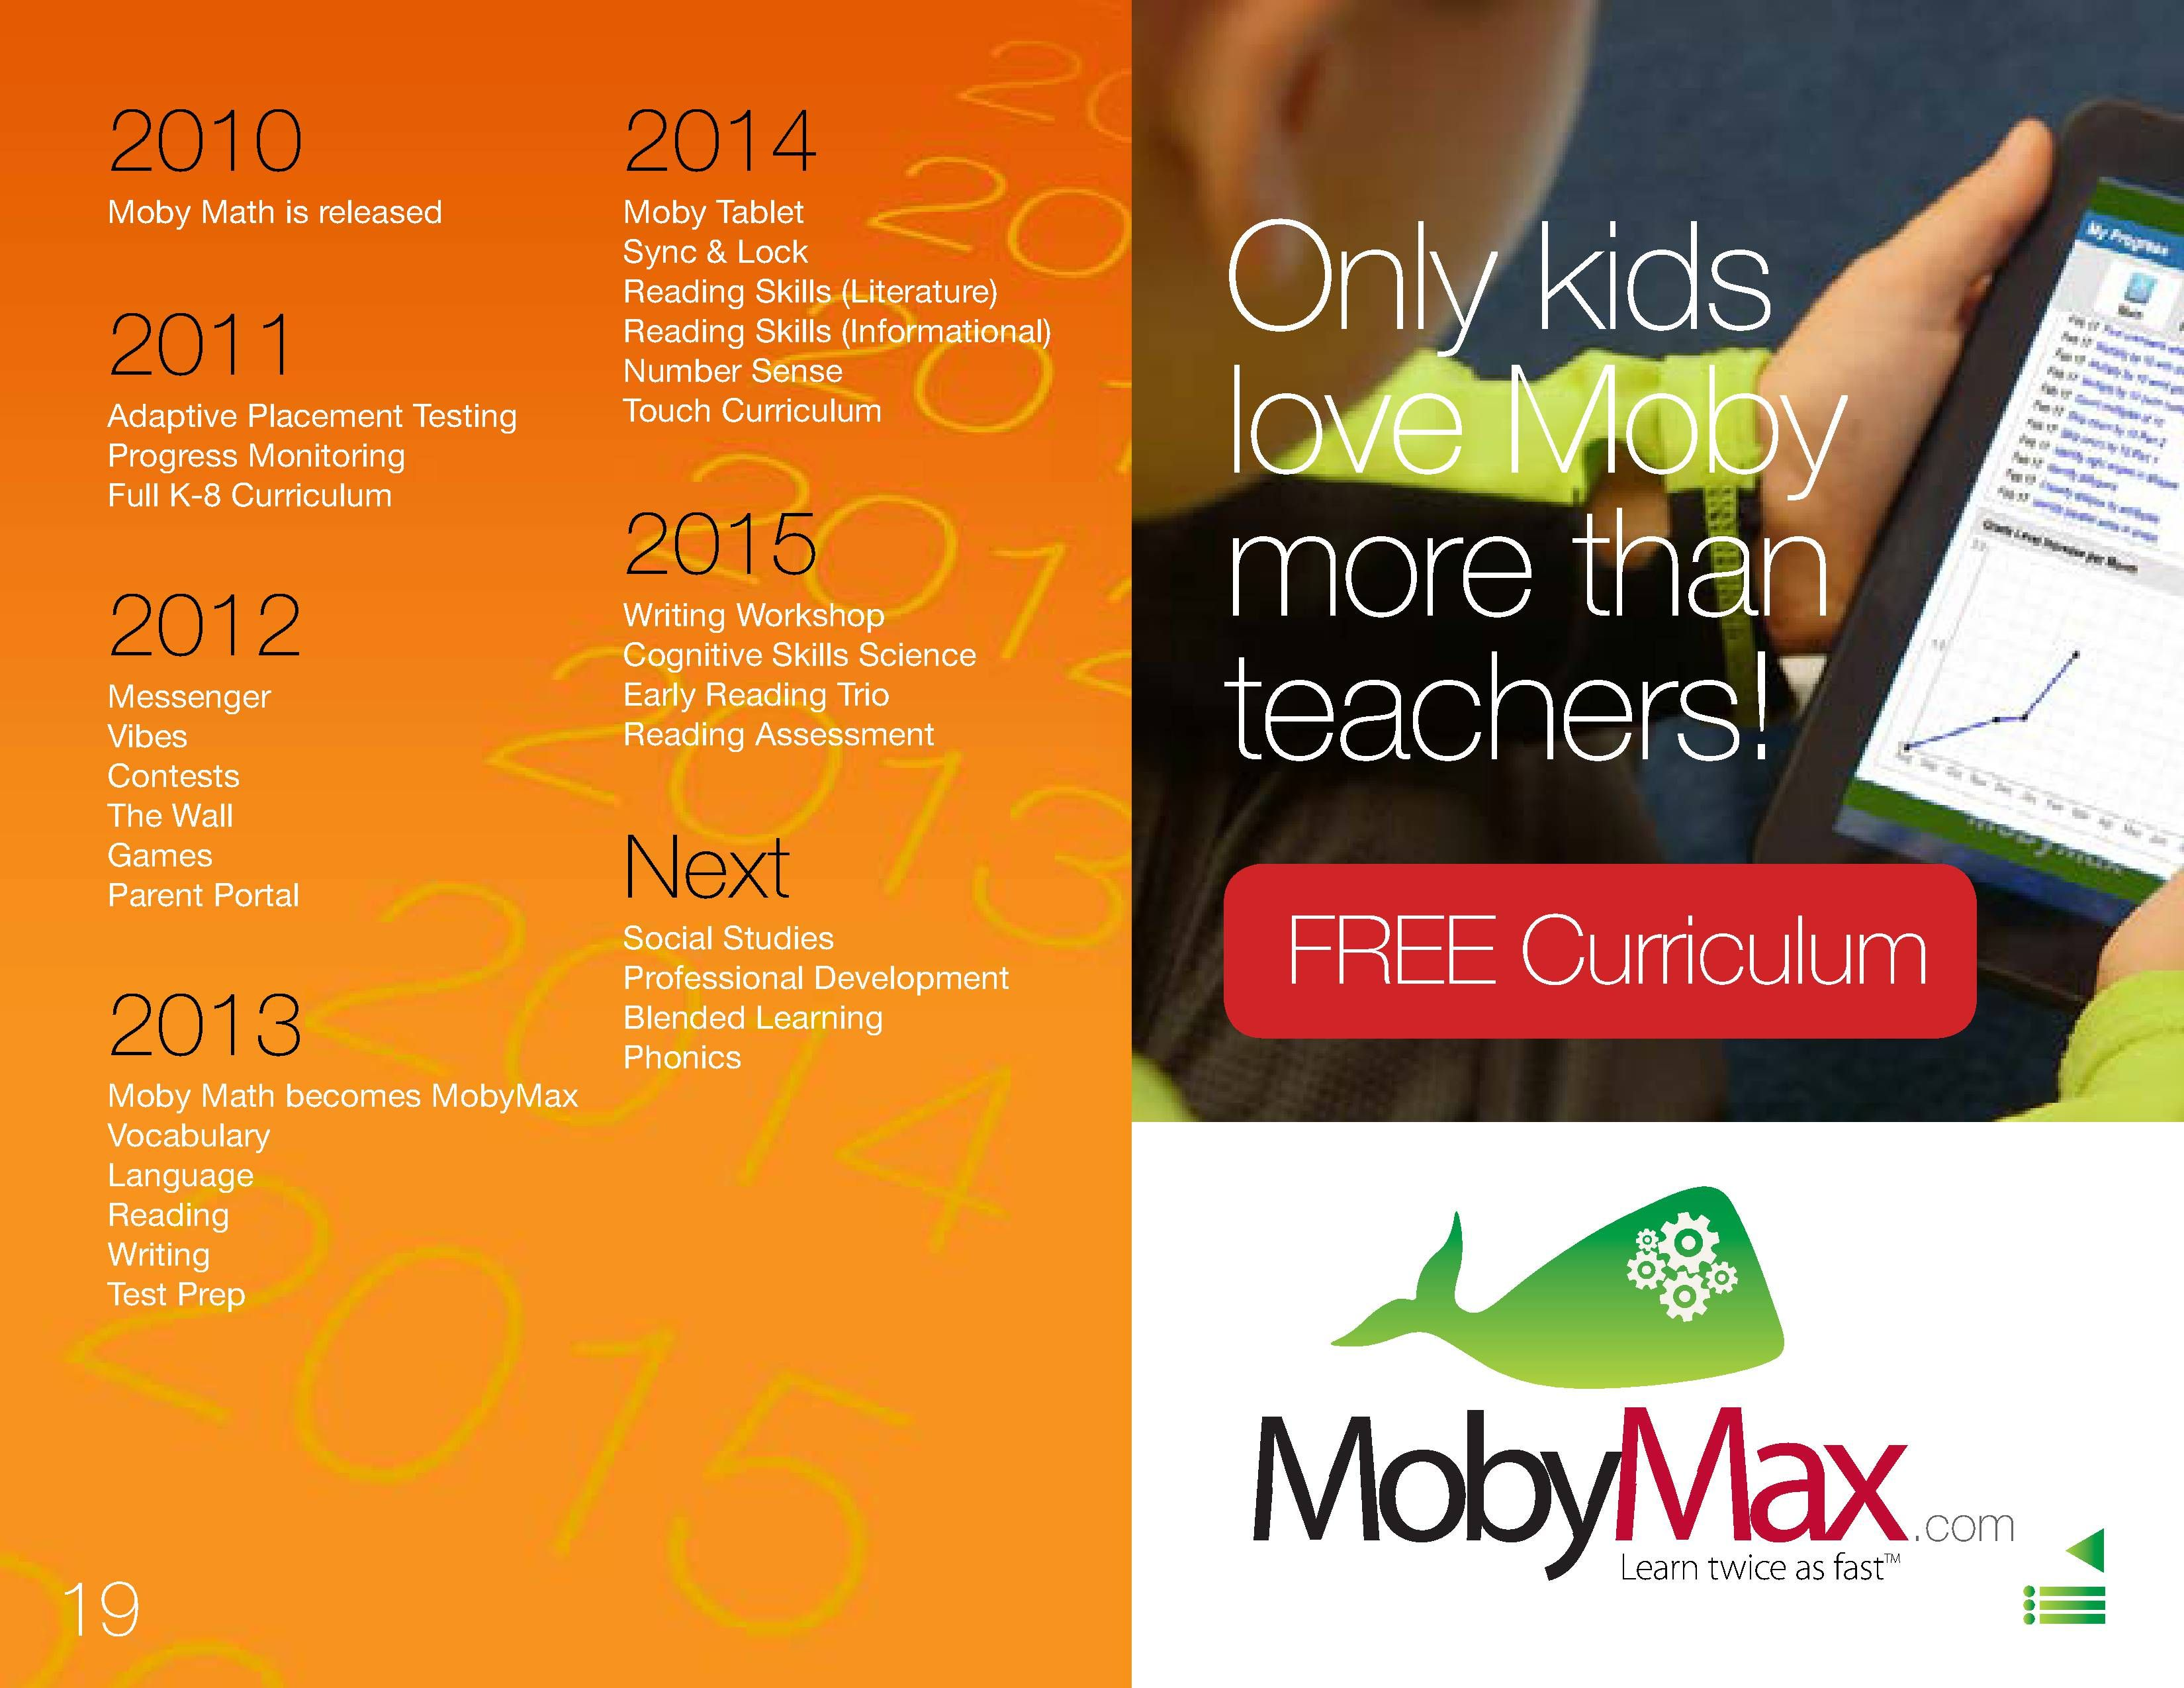 We're always growing at MobyMax! Take a look at what's in